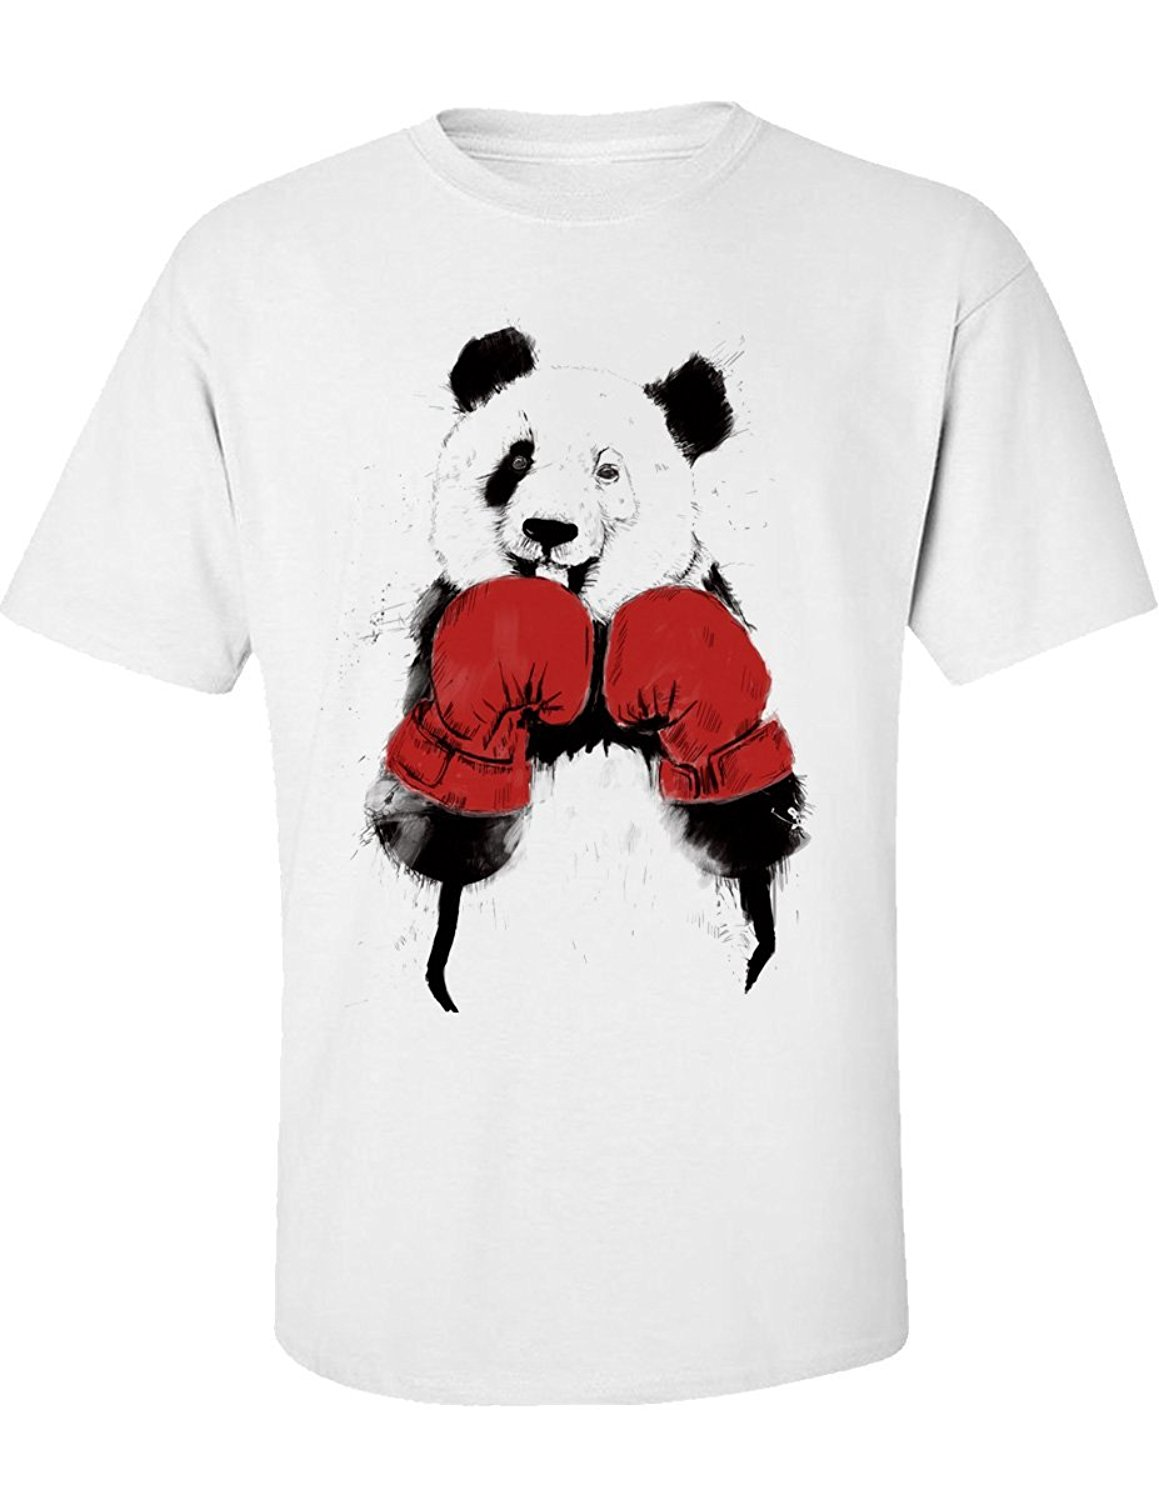 Design t shirts to sell - Design T Shirt And Sell Sell 100 Cotton Male Designing T Shirt Summer Casual Download